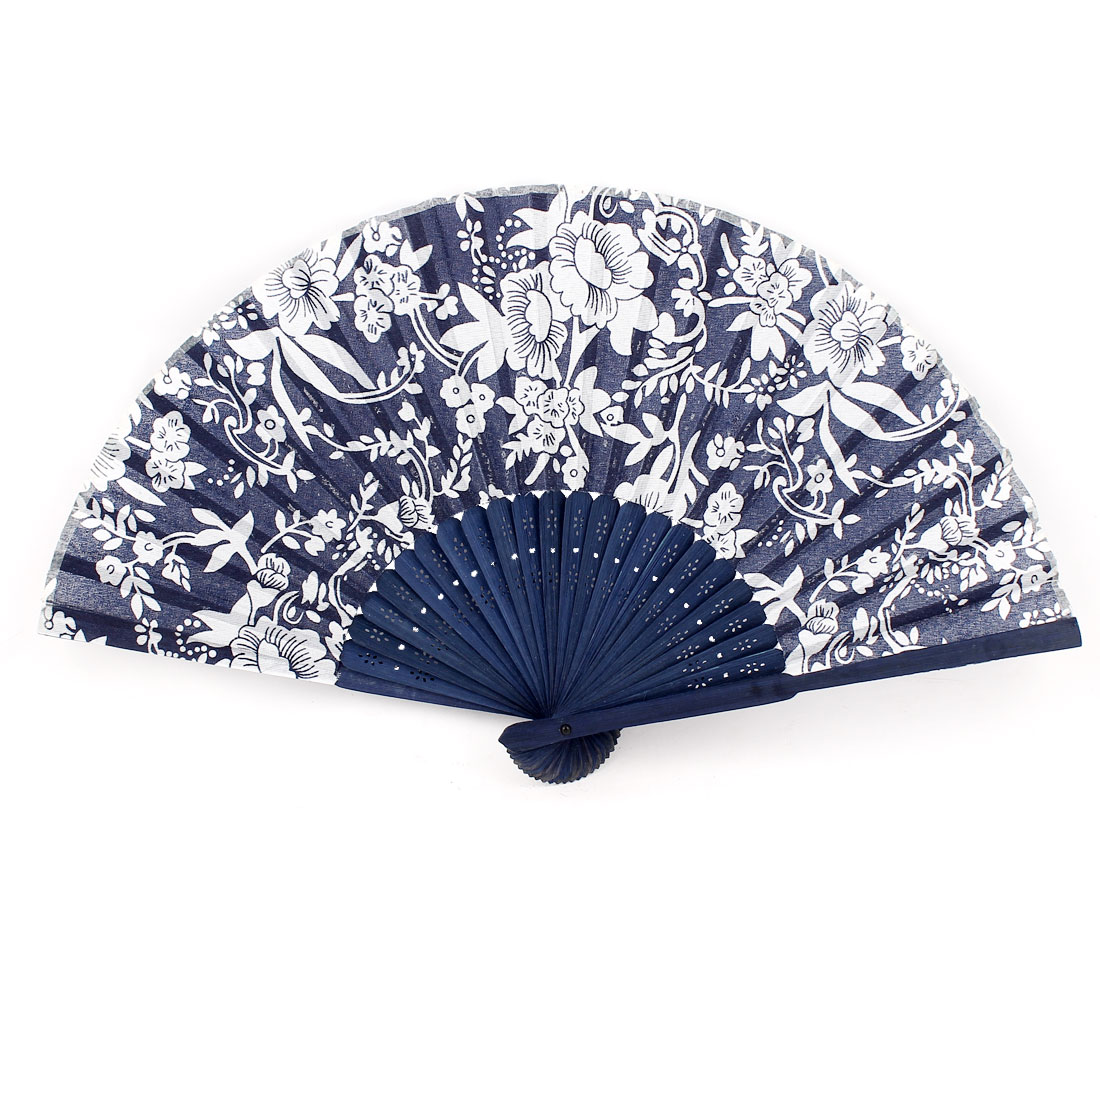 Flower Pattern Hollow Out Design Bamboo Frame Fabric Cover Folding Hand Fan Blue